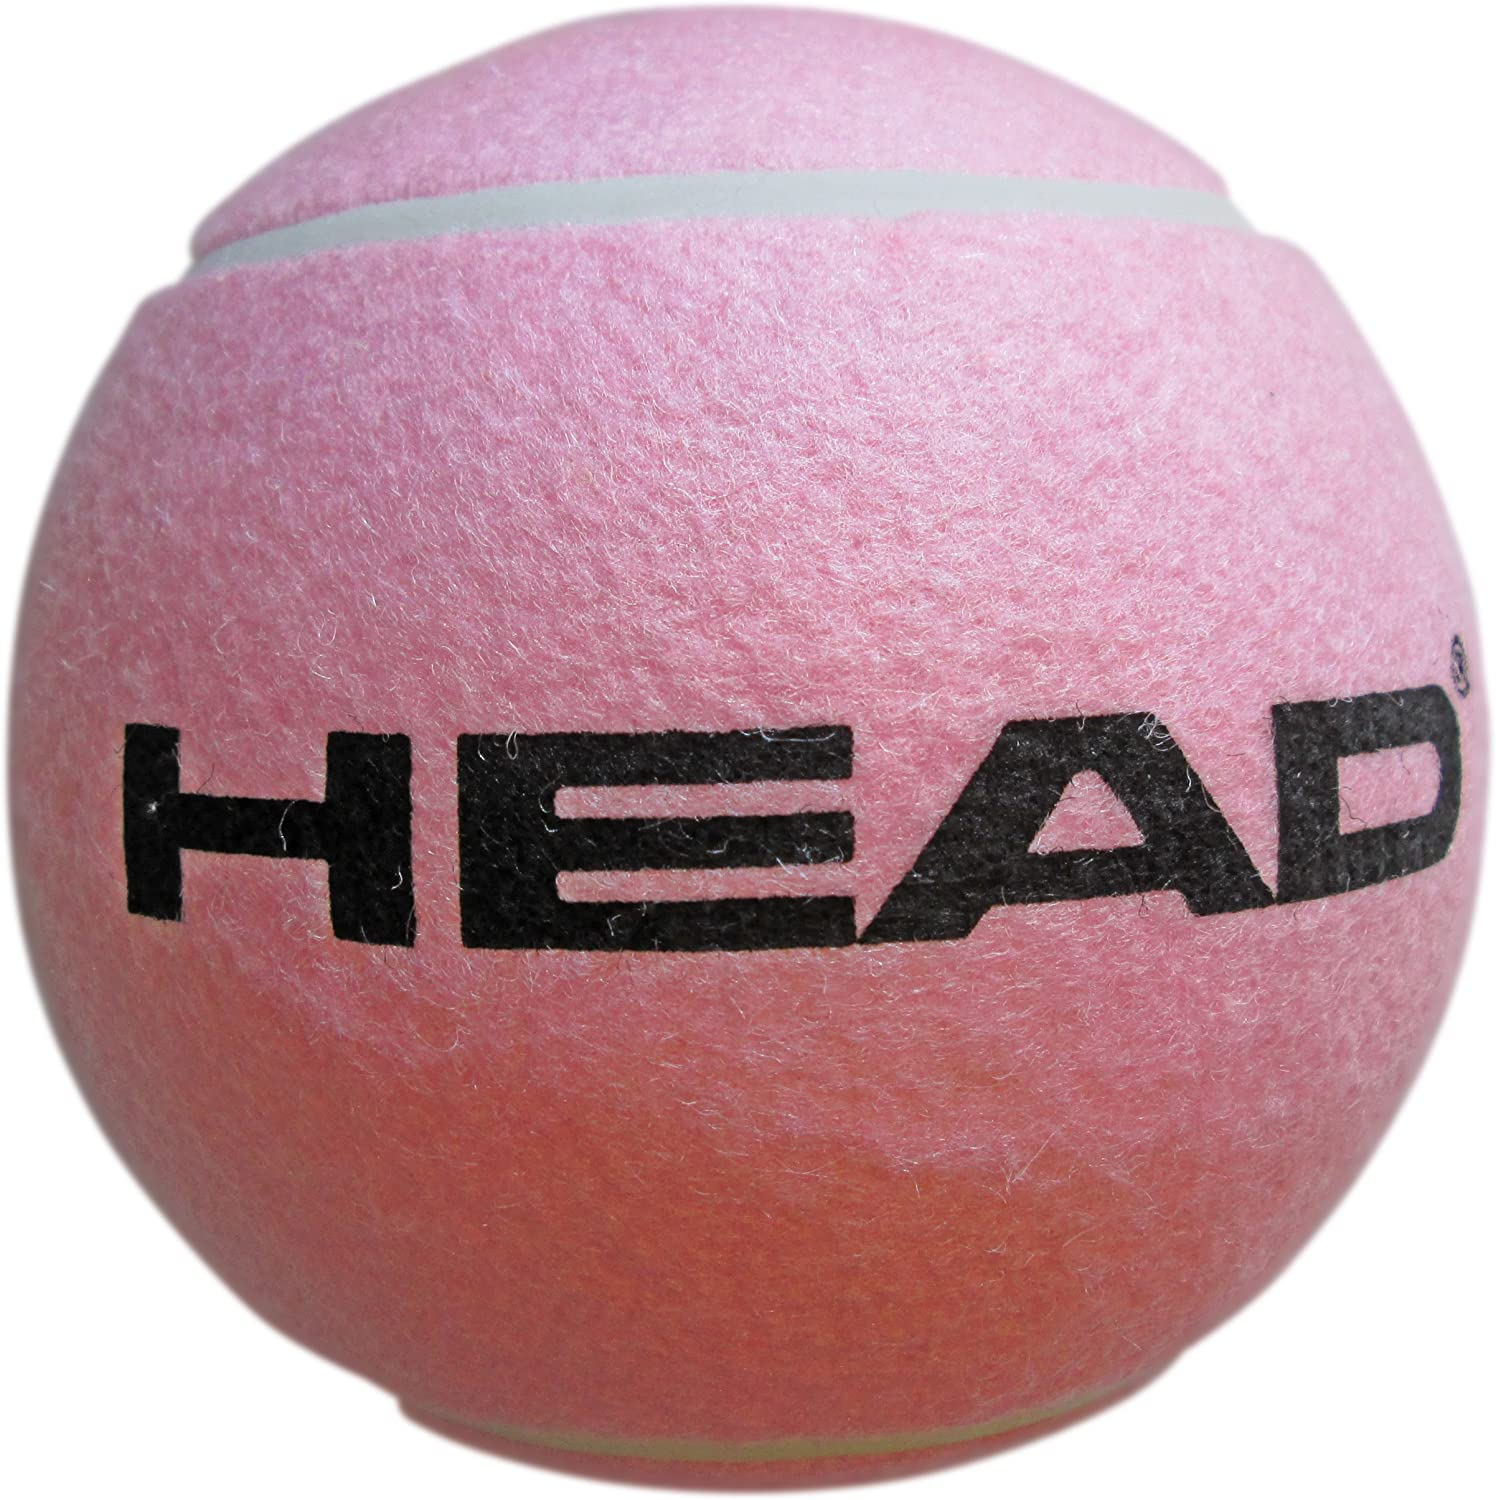 Head - Pelota de Tenis (tamaño Mediano), Color Rosa: Amazon.es ...